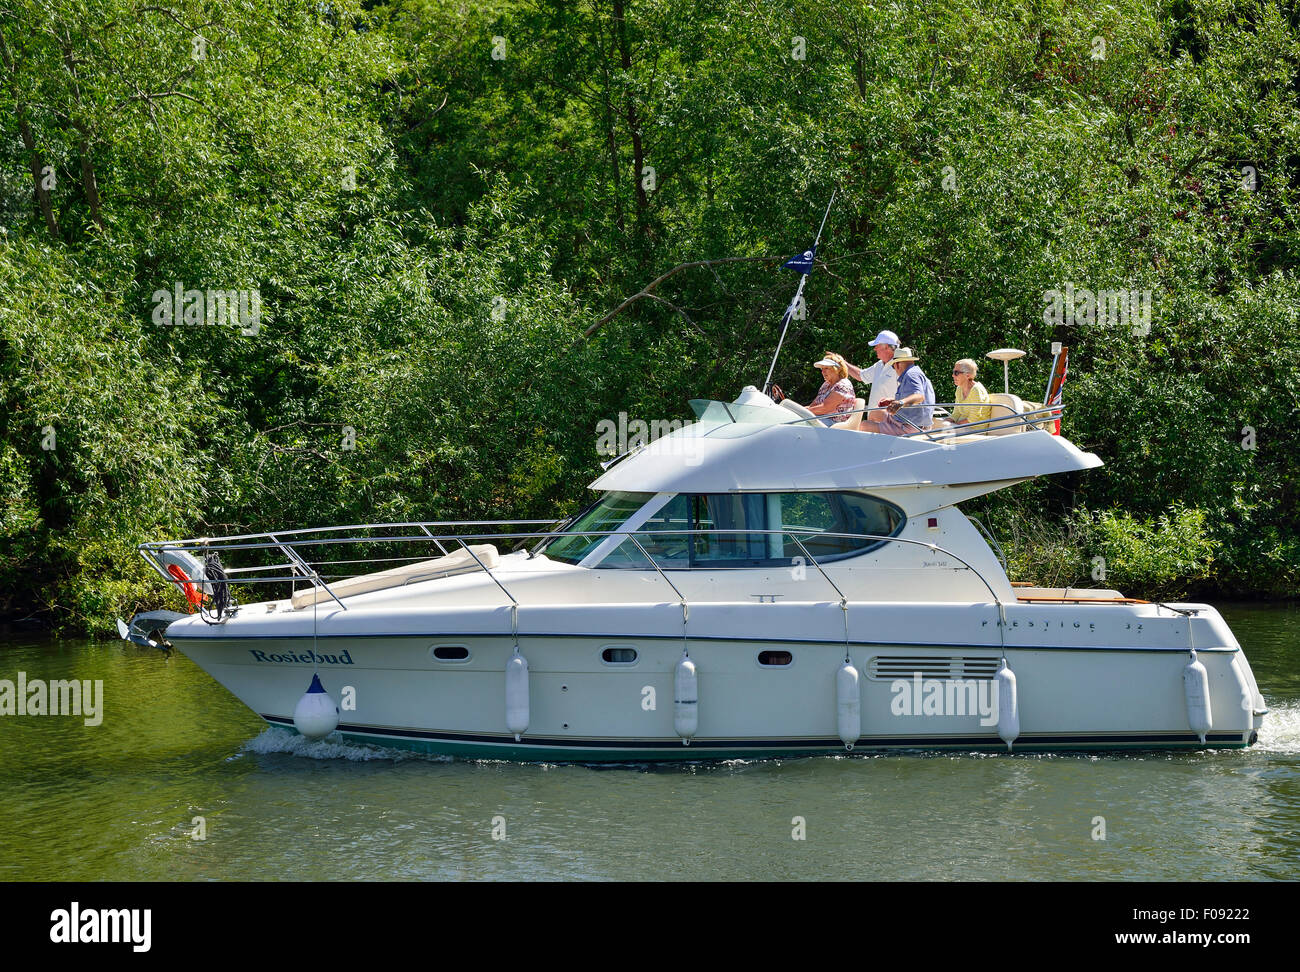 Group on Jeanneau Prestige 32 Boat cruise boat on River Thames, Runnymede, Surrey, England, United Kingdom - Stock Image